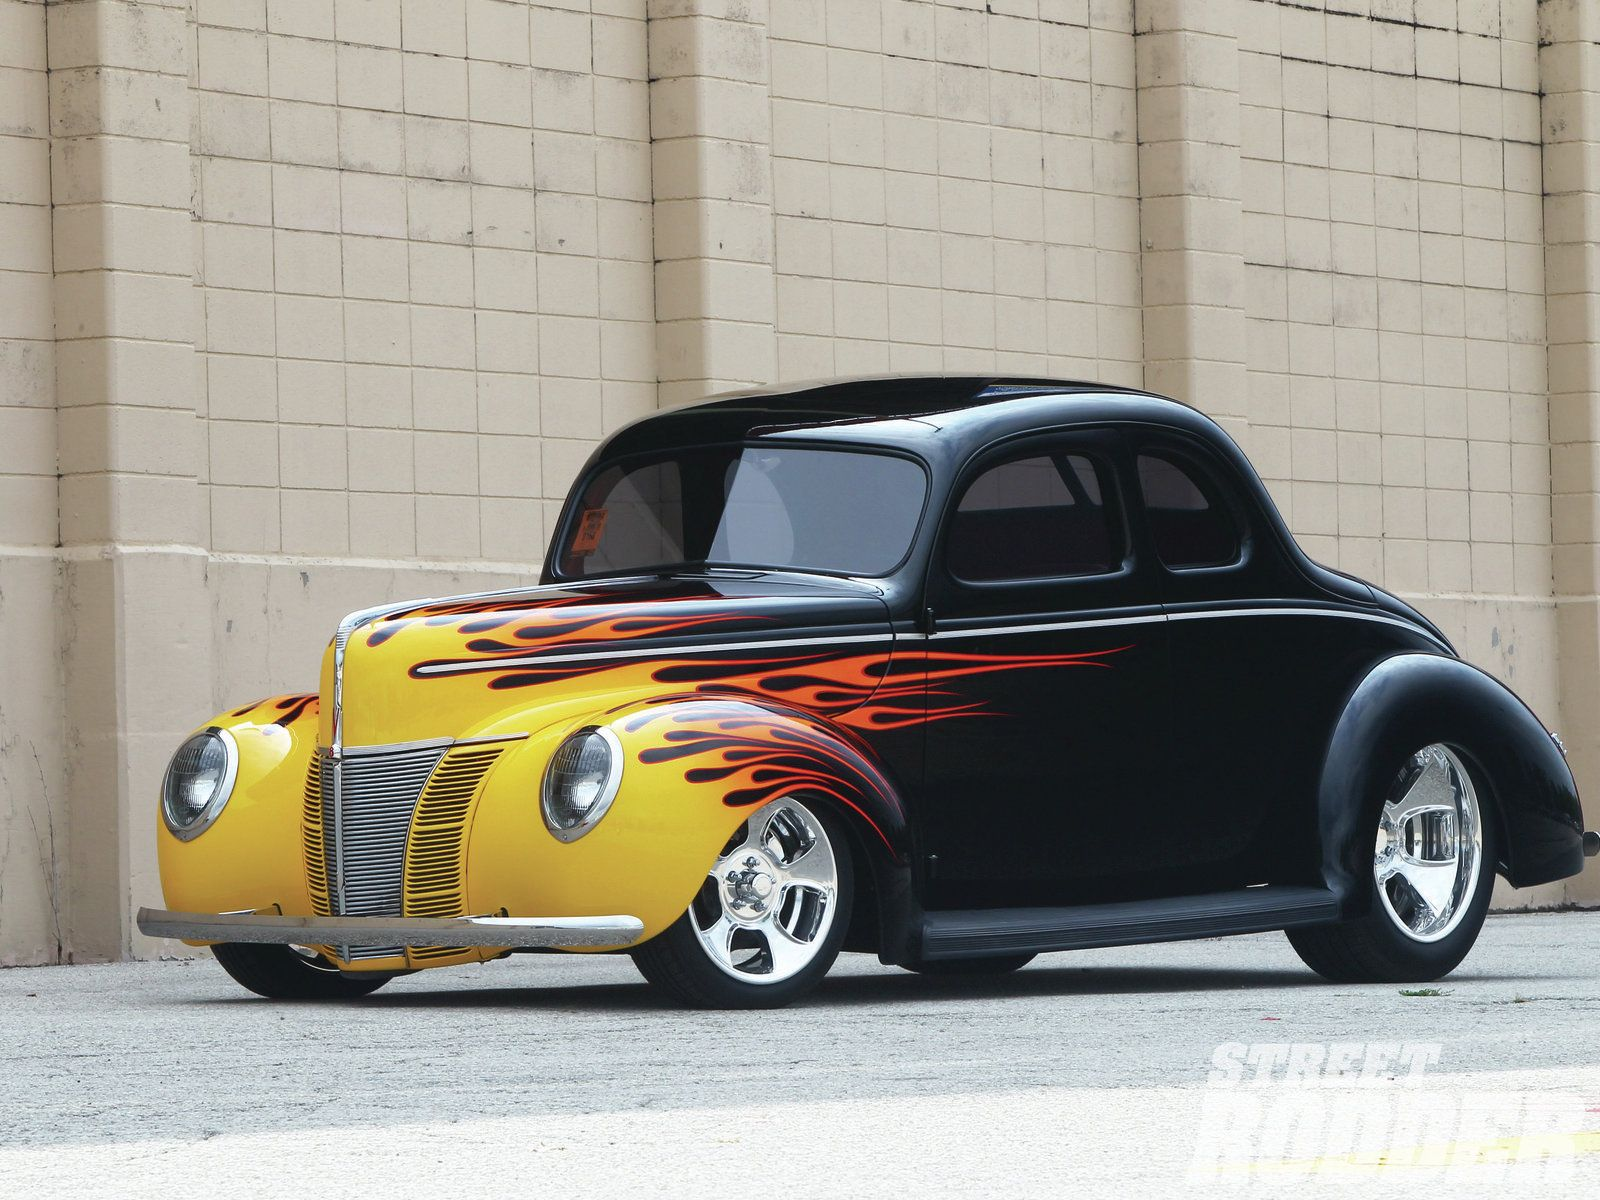 Larry olson doesn t limit his street rod preferences to the iconic 1940 ford coupe however this flamed custom ranks high on his list